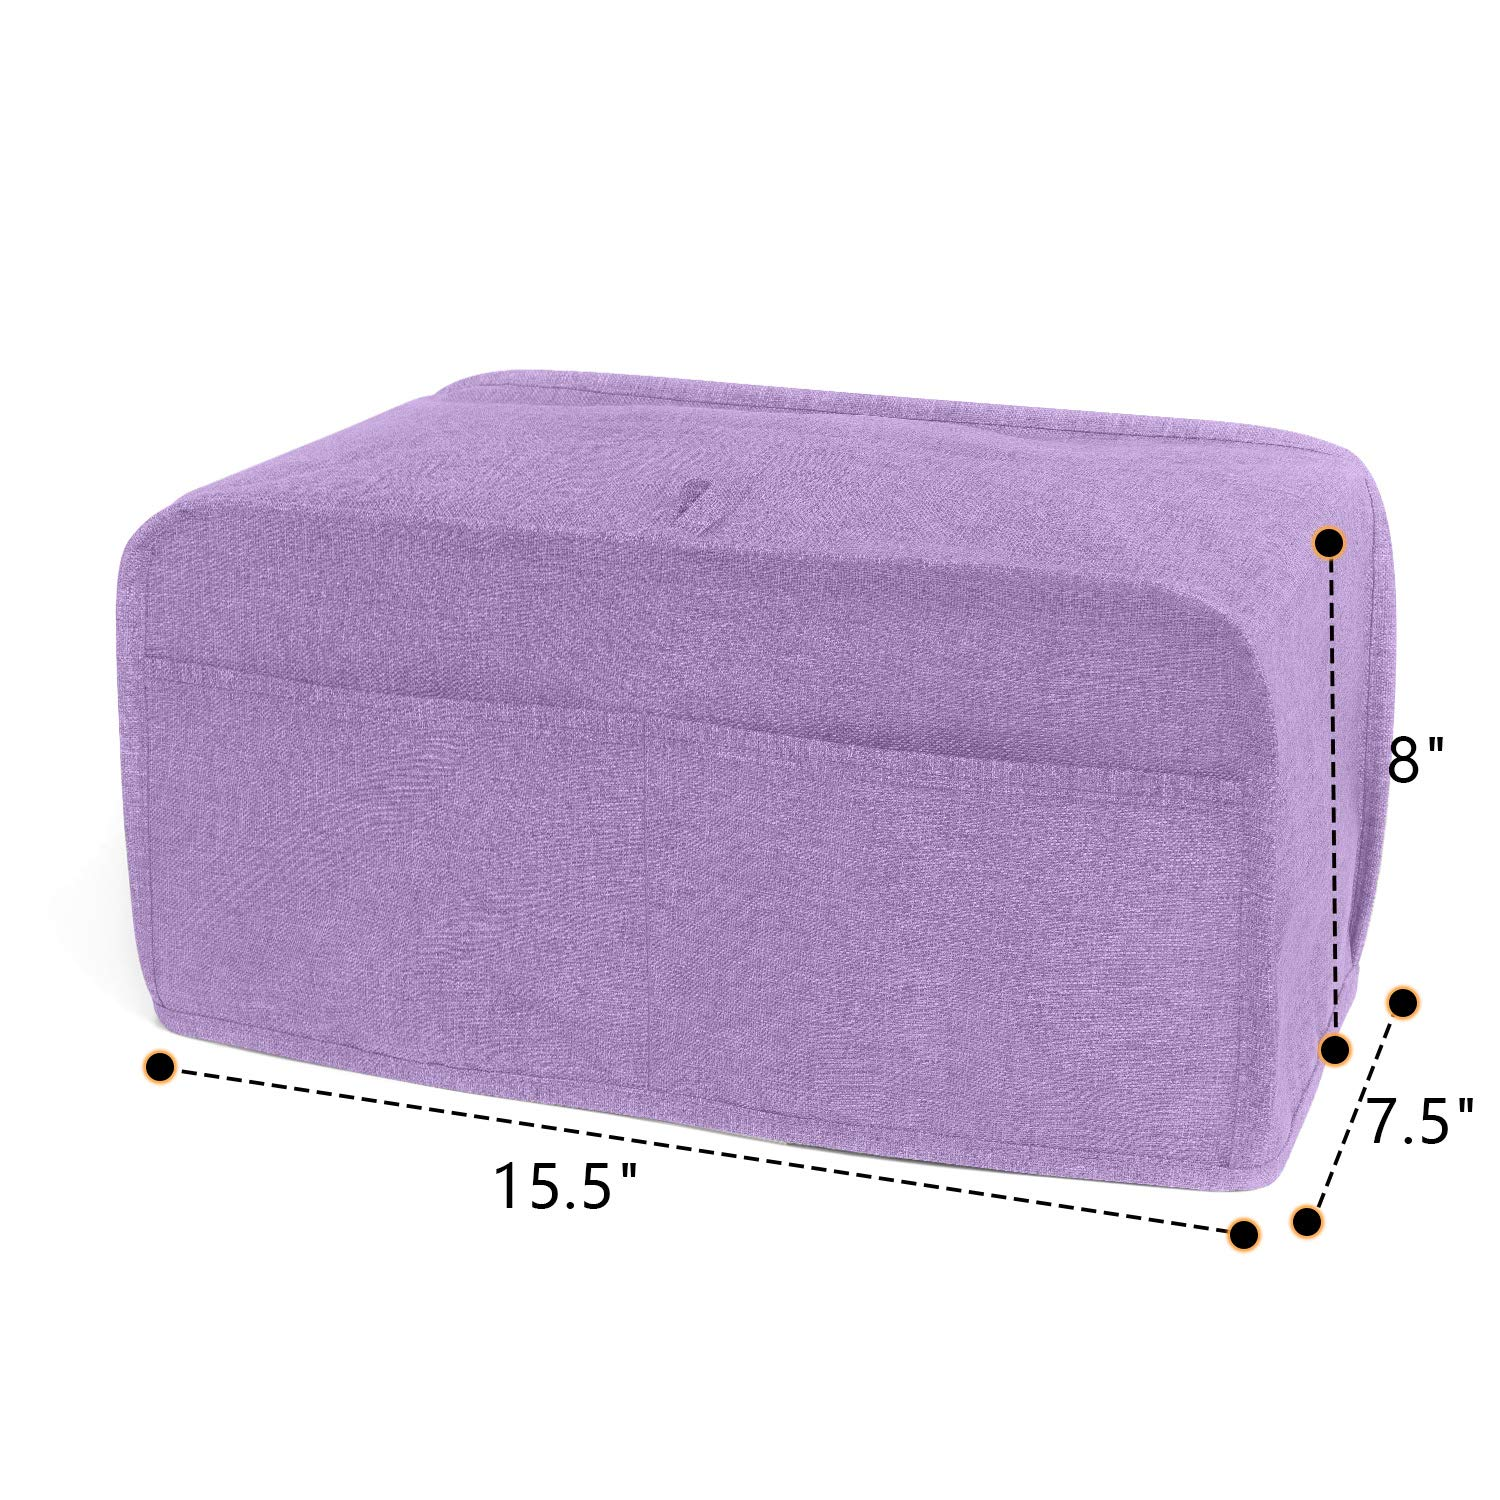 Fits for Most Major 2 Slice Toasters Toaster Cover with 2 Pockets Lavender Luxja 2 Slice Toaster Cover 11 x 7.5 x 8 inches